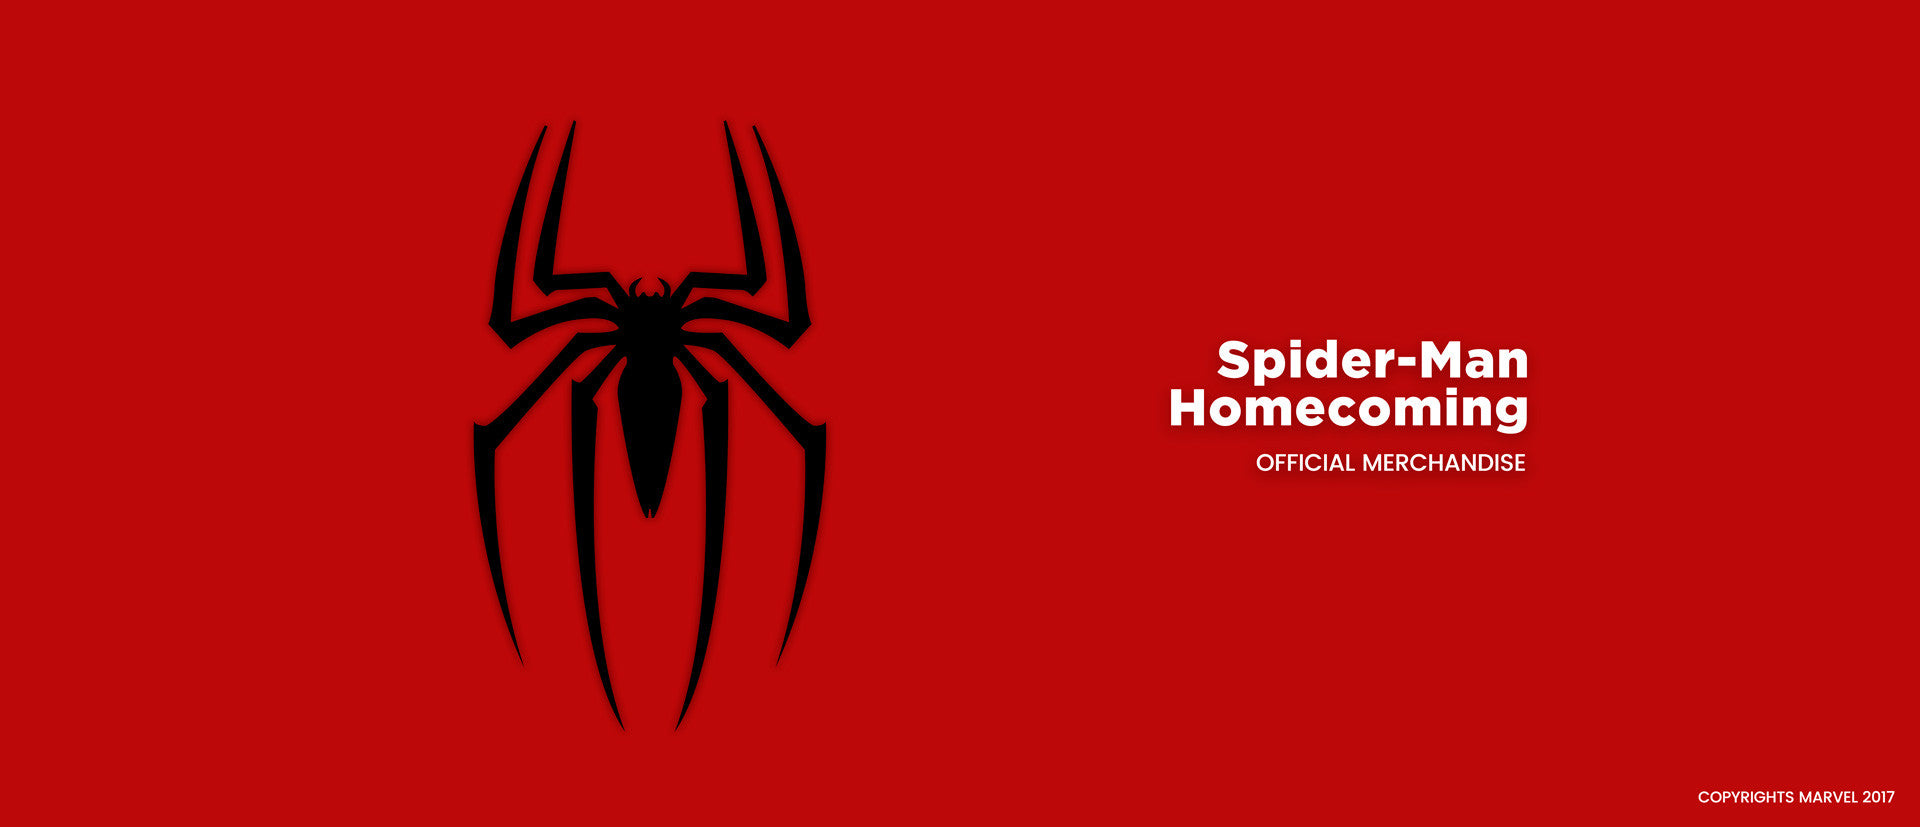 Spiderman t shirts  home page banner